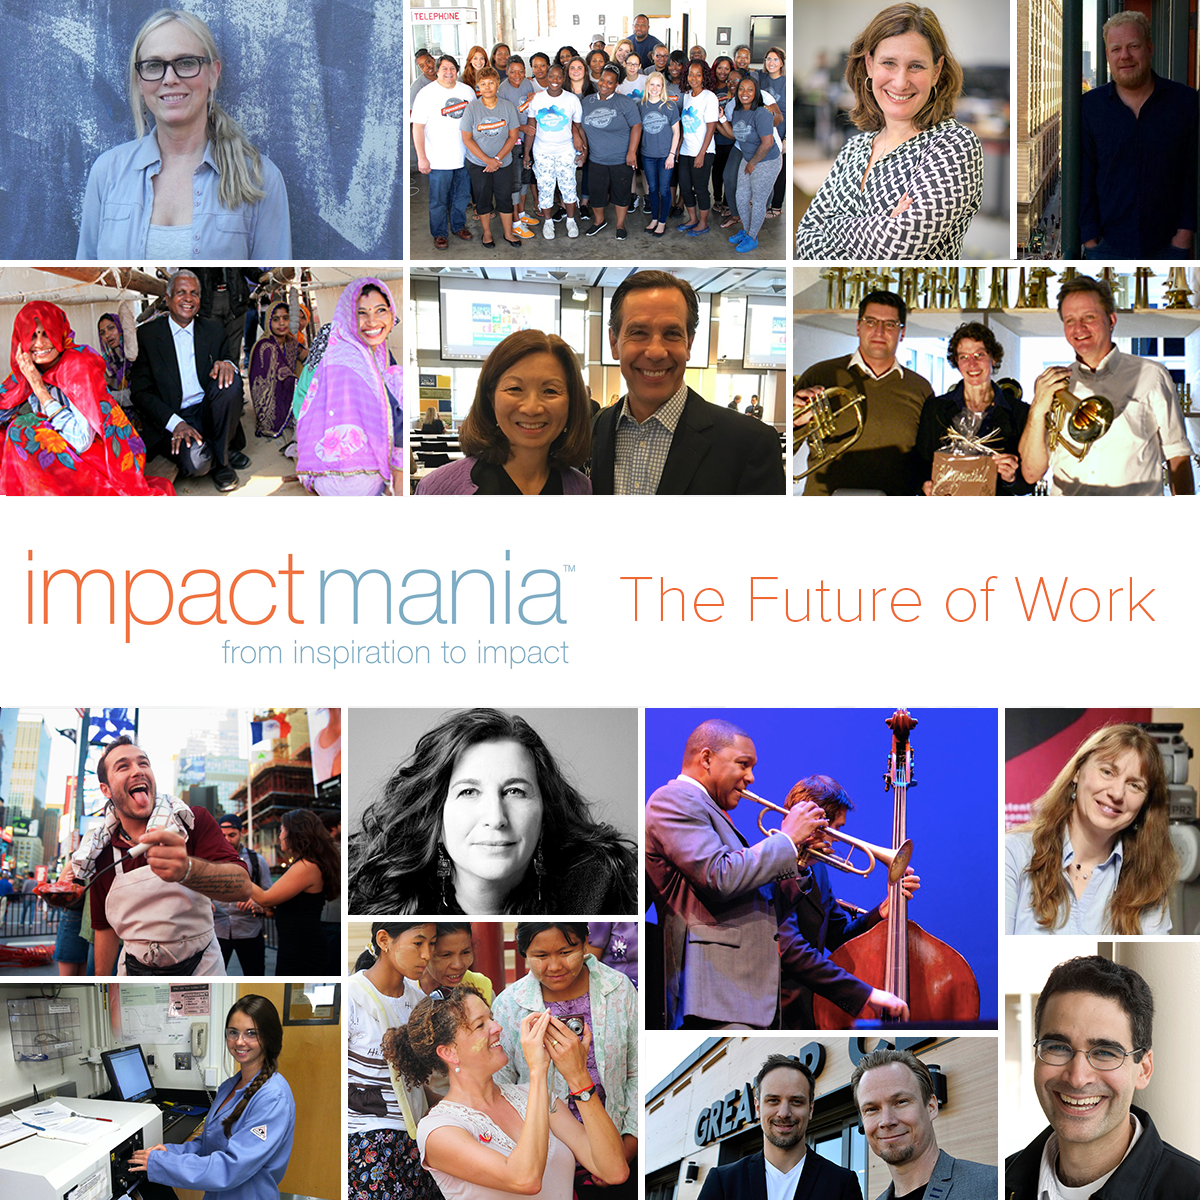 December 2016, The Future of Work, impactmania